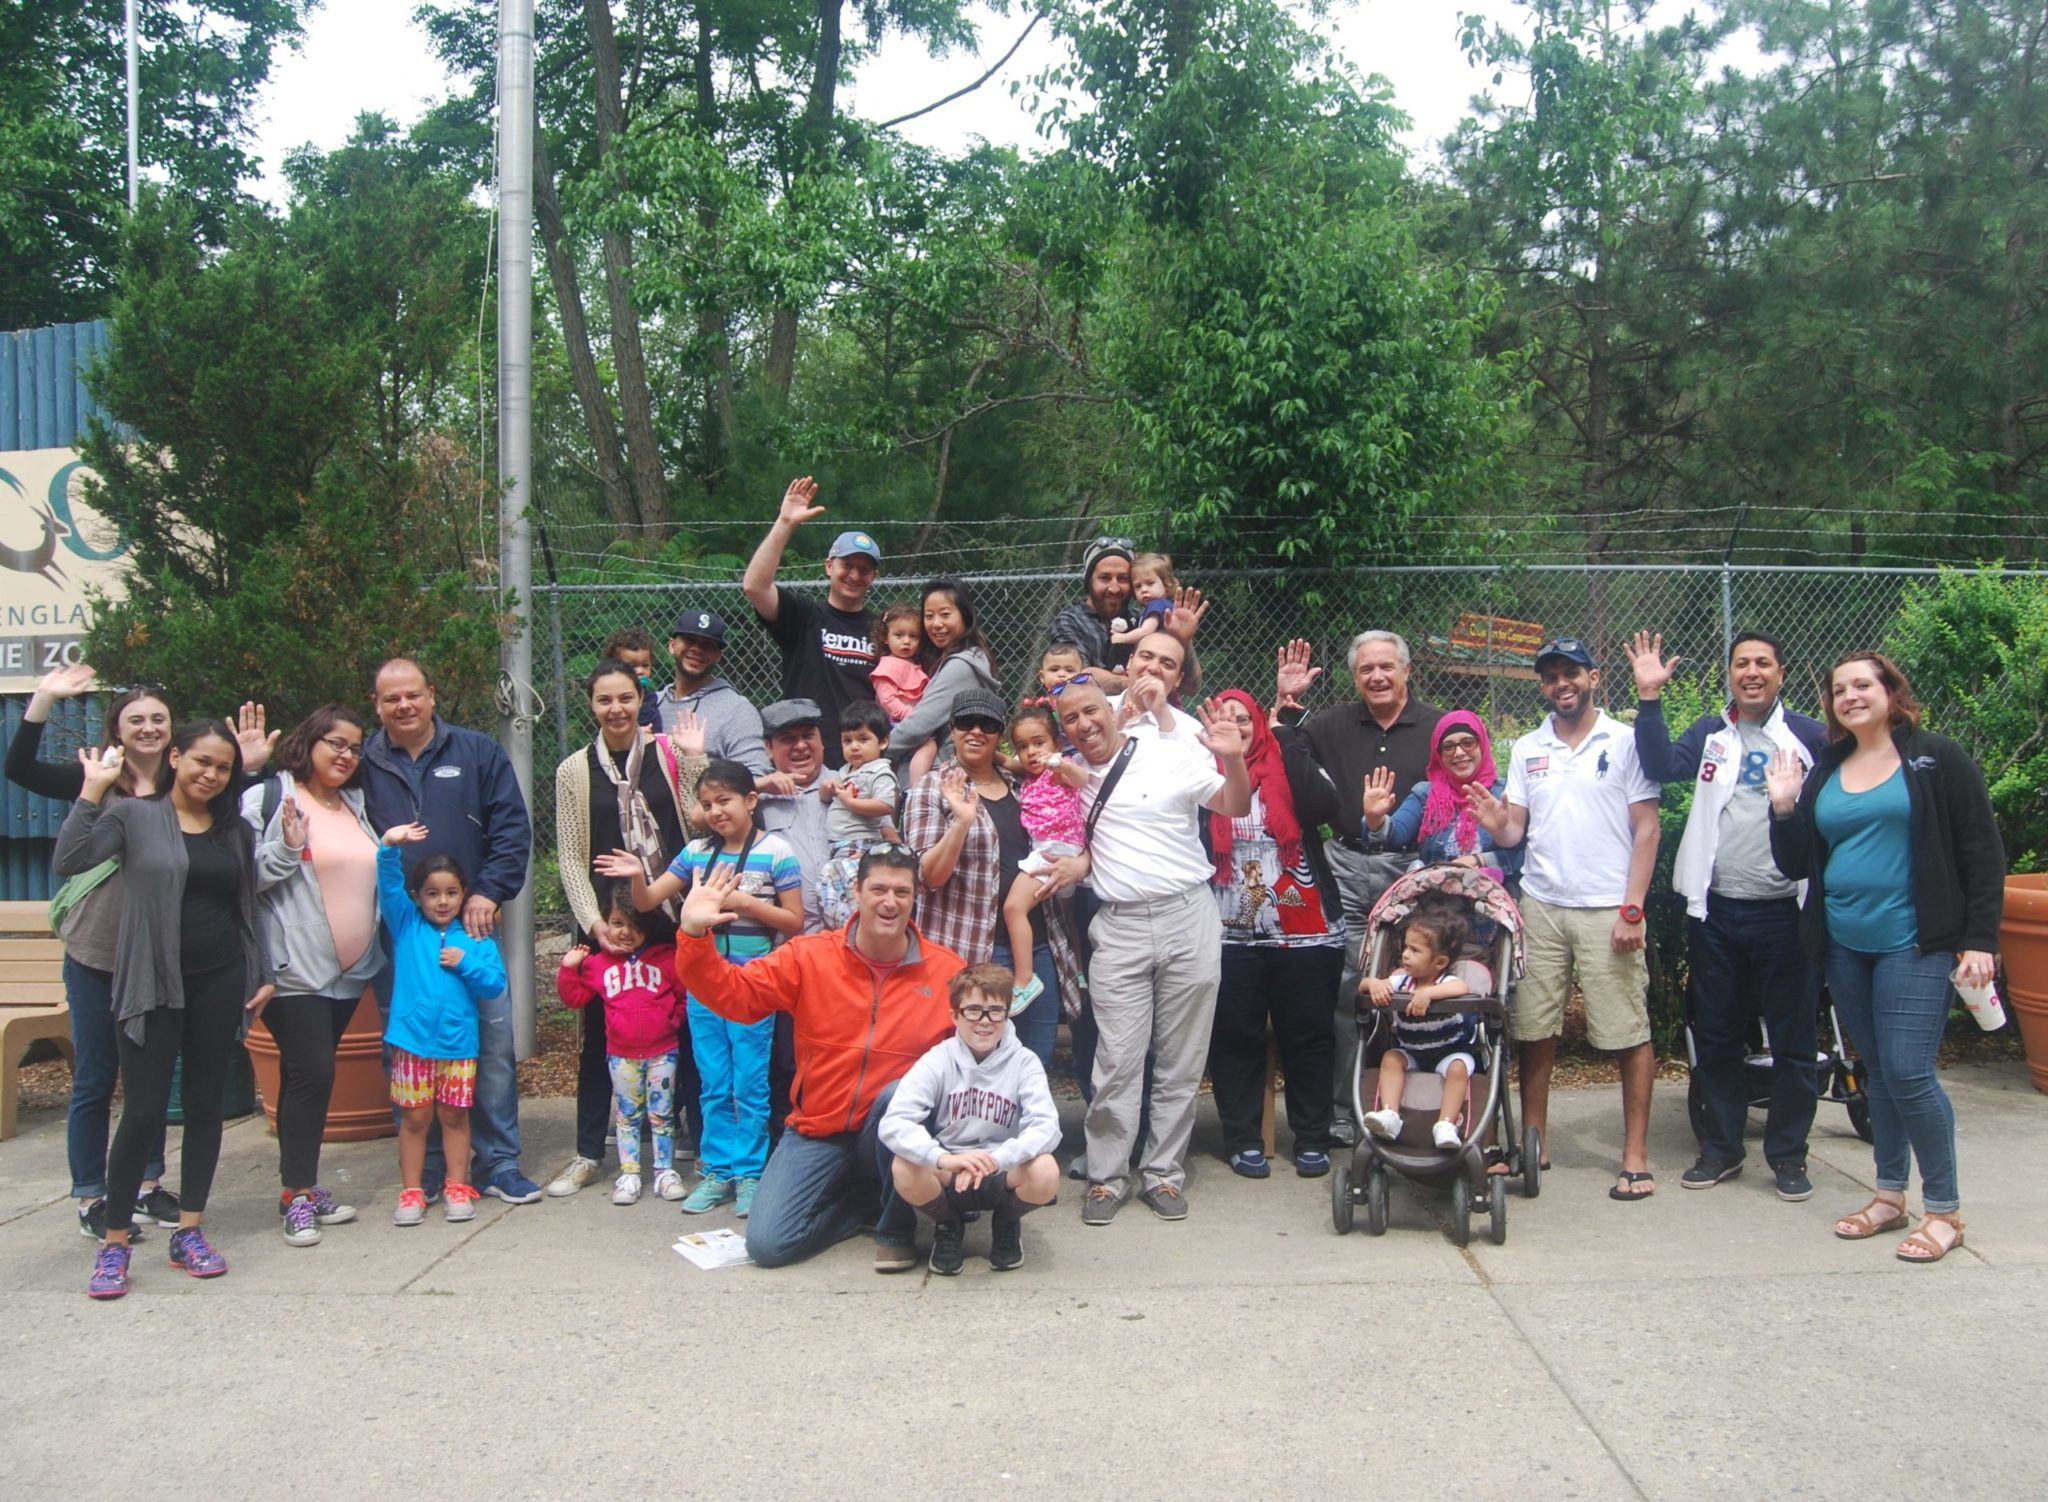 TFP Revere Dads and Kids Activity Group at the zoo